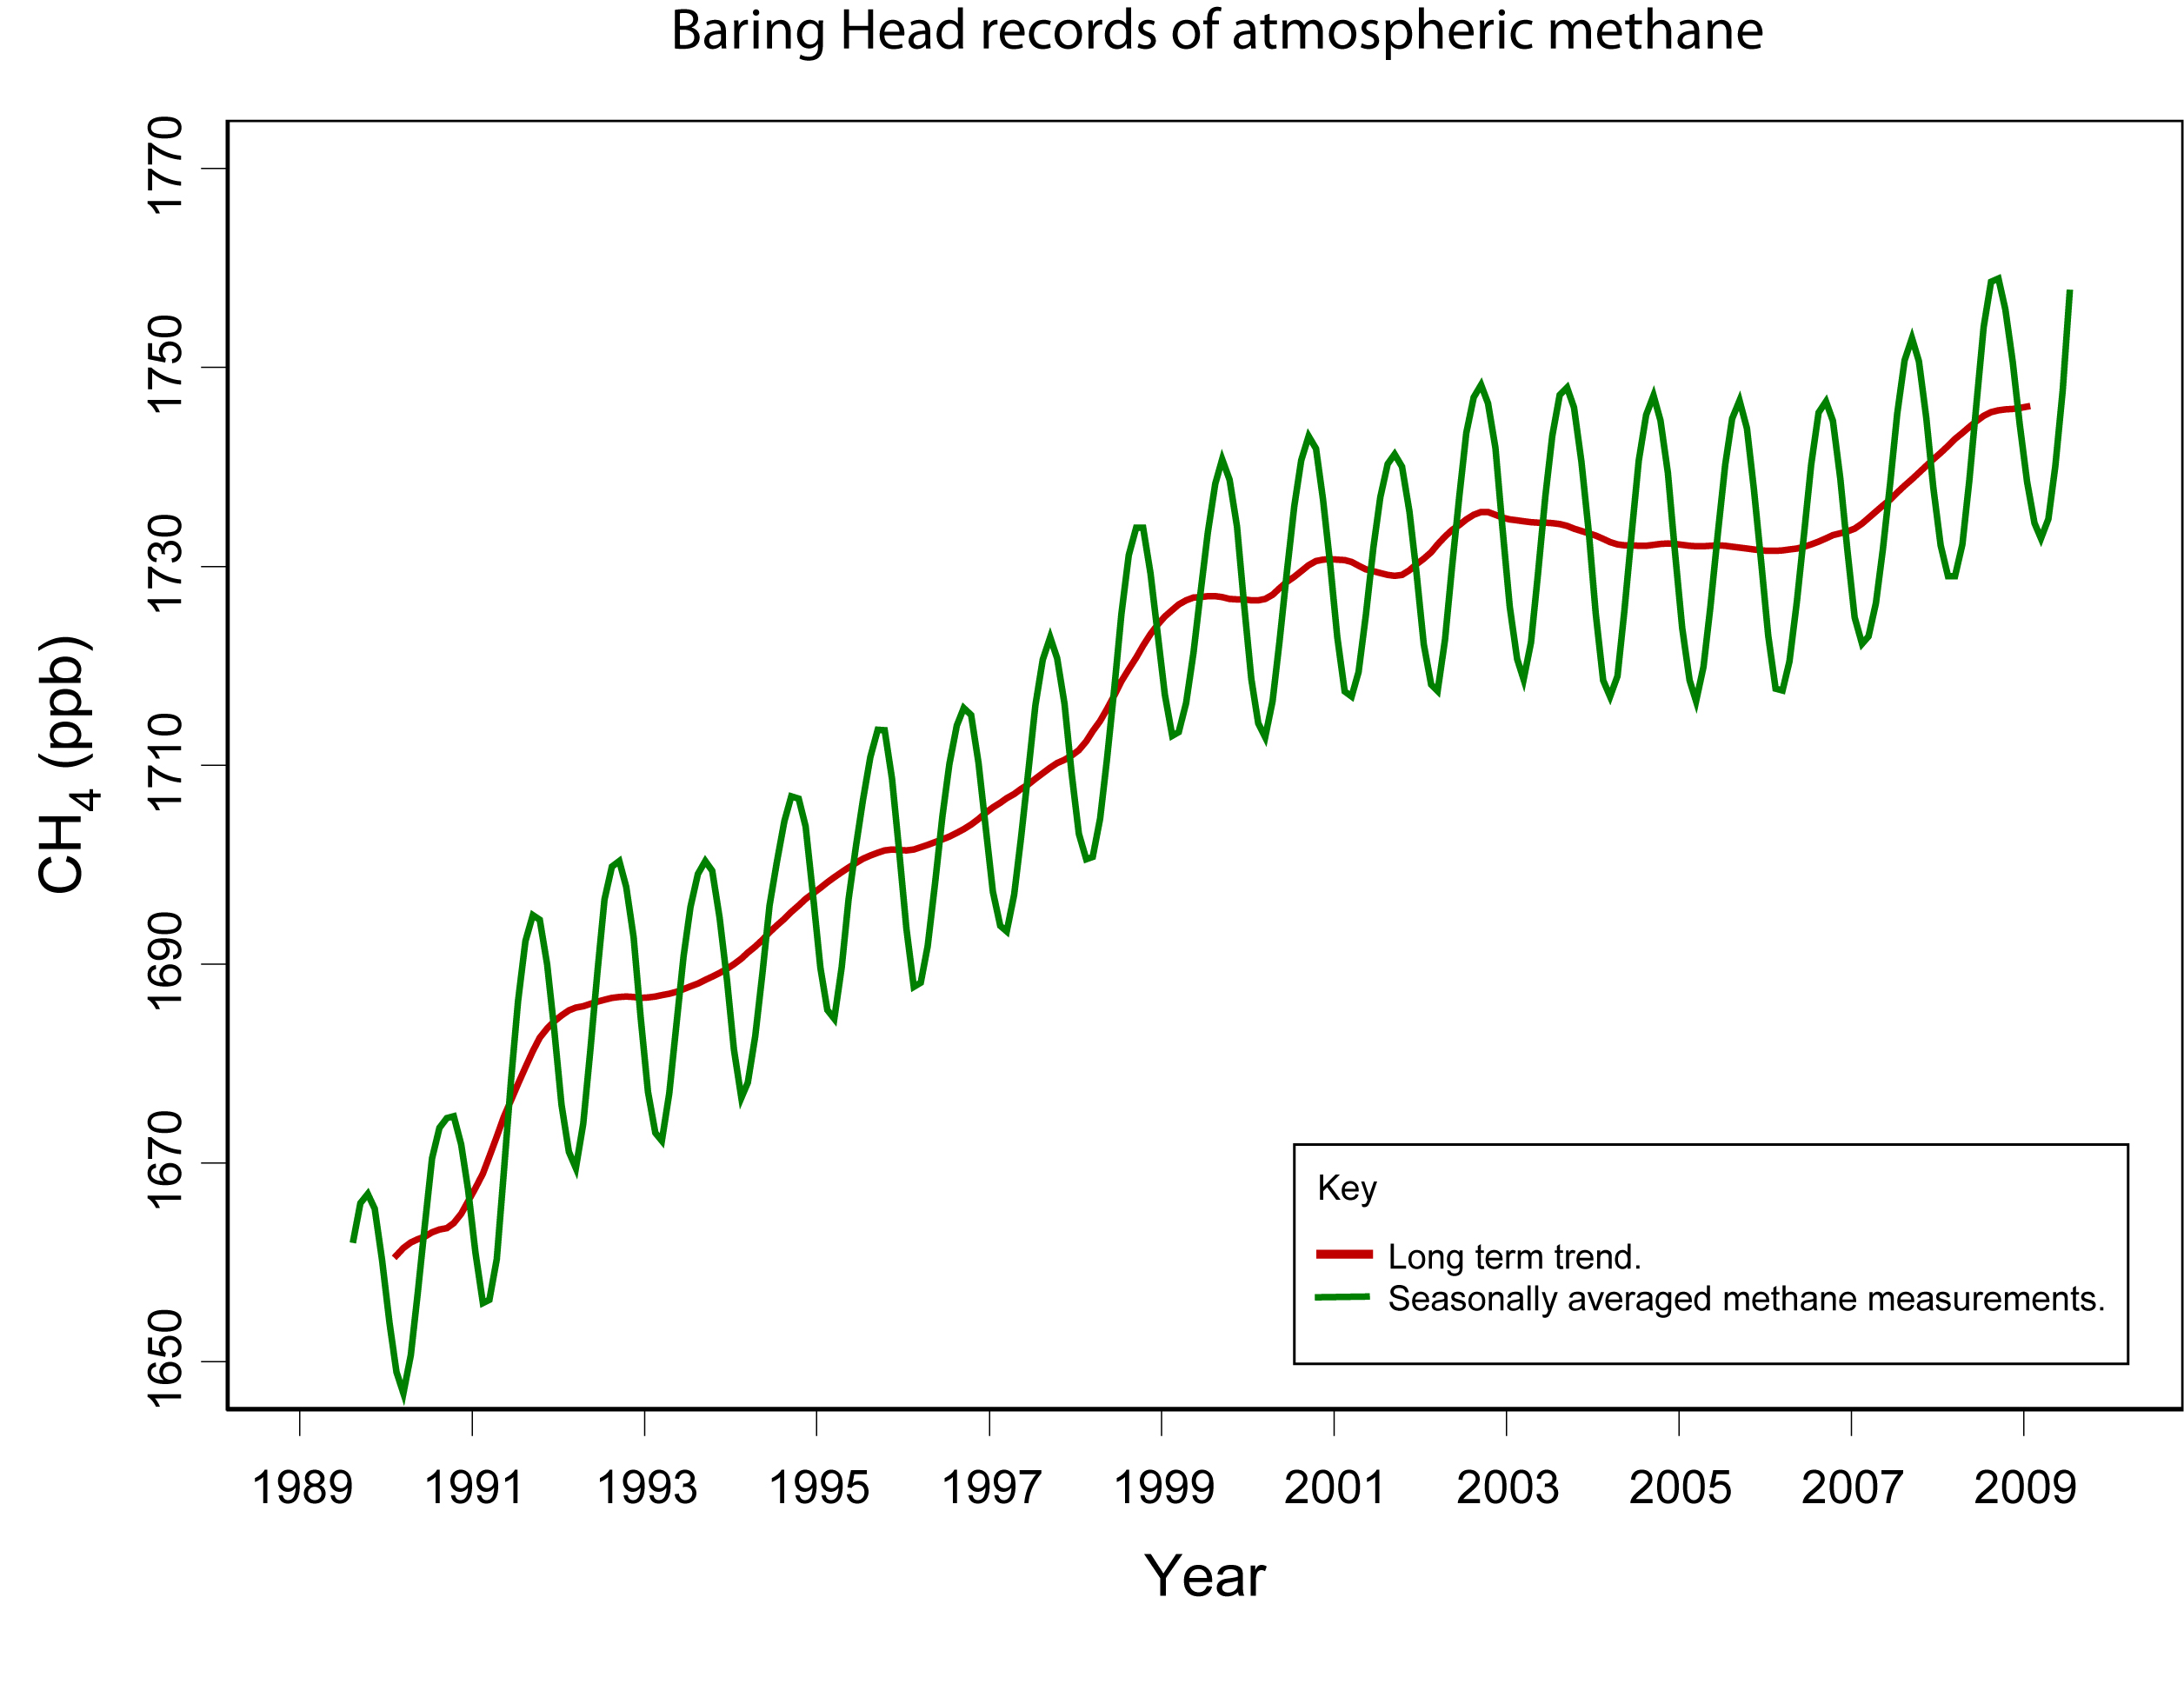 Niwa says greenhouse gas methane on the rise again scoop news this figure shows atmospheric methane measured at baring head near wellington since august 1989 the graph shows the methane mixing ratio in parts nvjuhfo Gallery